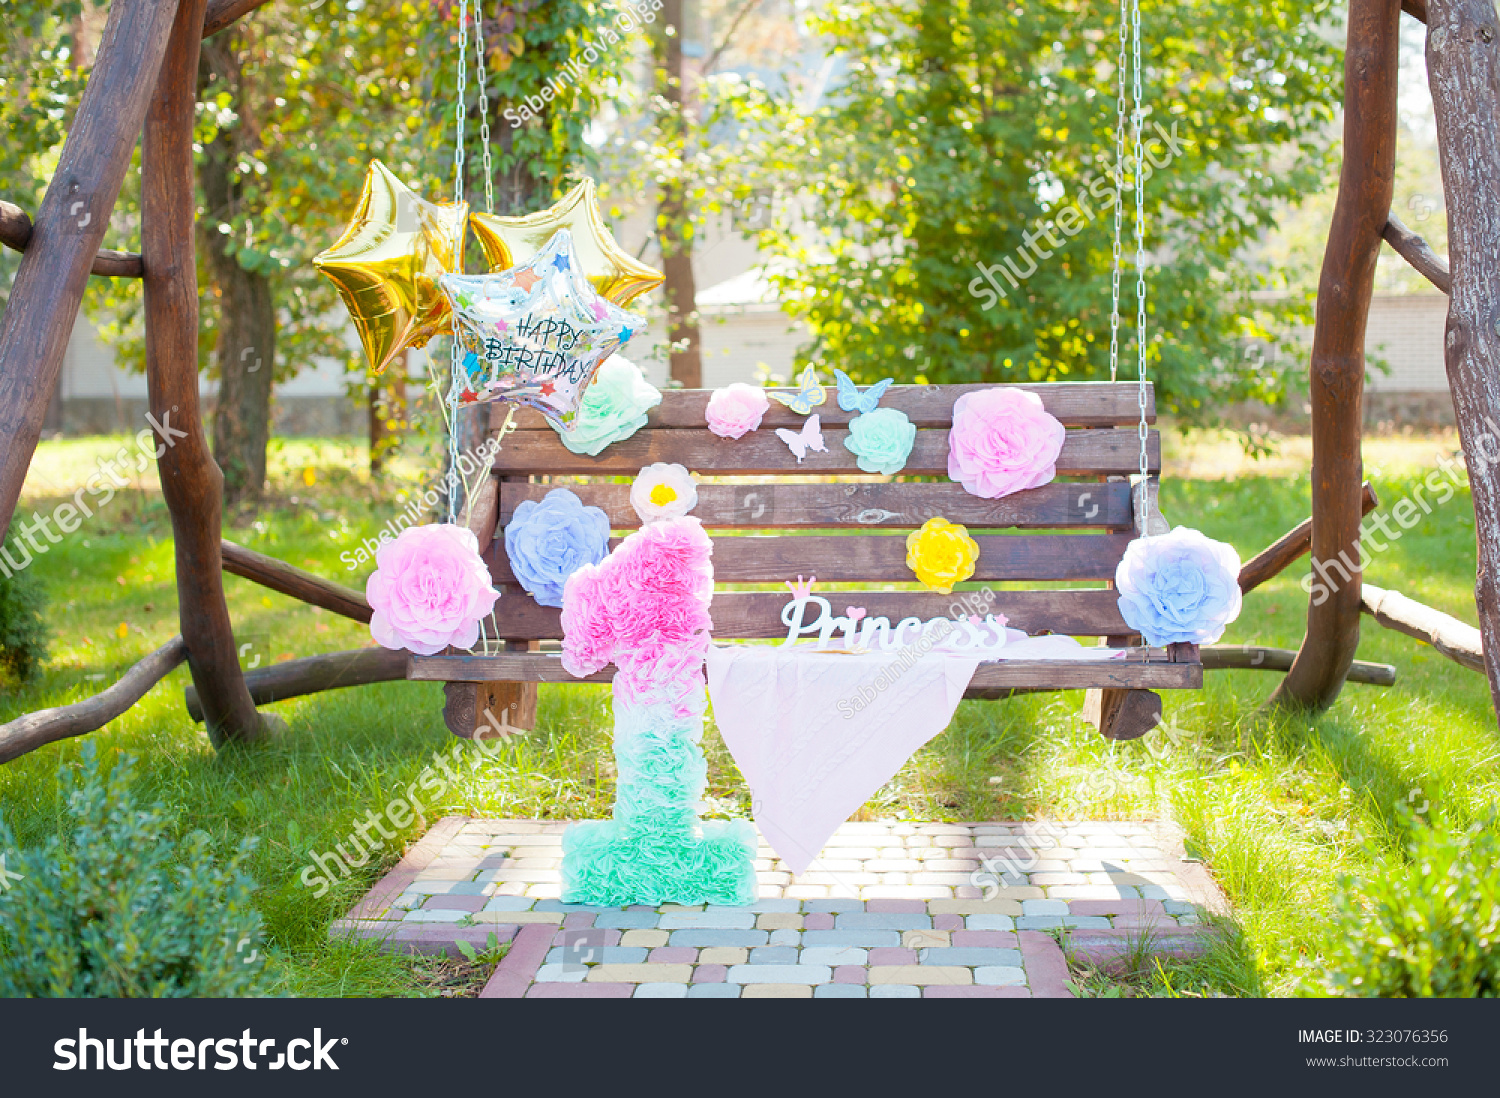 Birthday Party Decorations Ballons Big Figure Stock Photo Edit Now 323076356